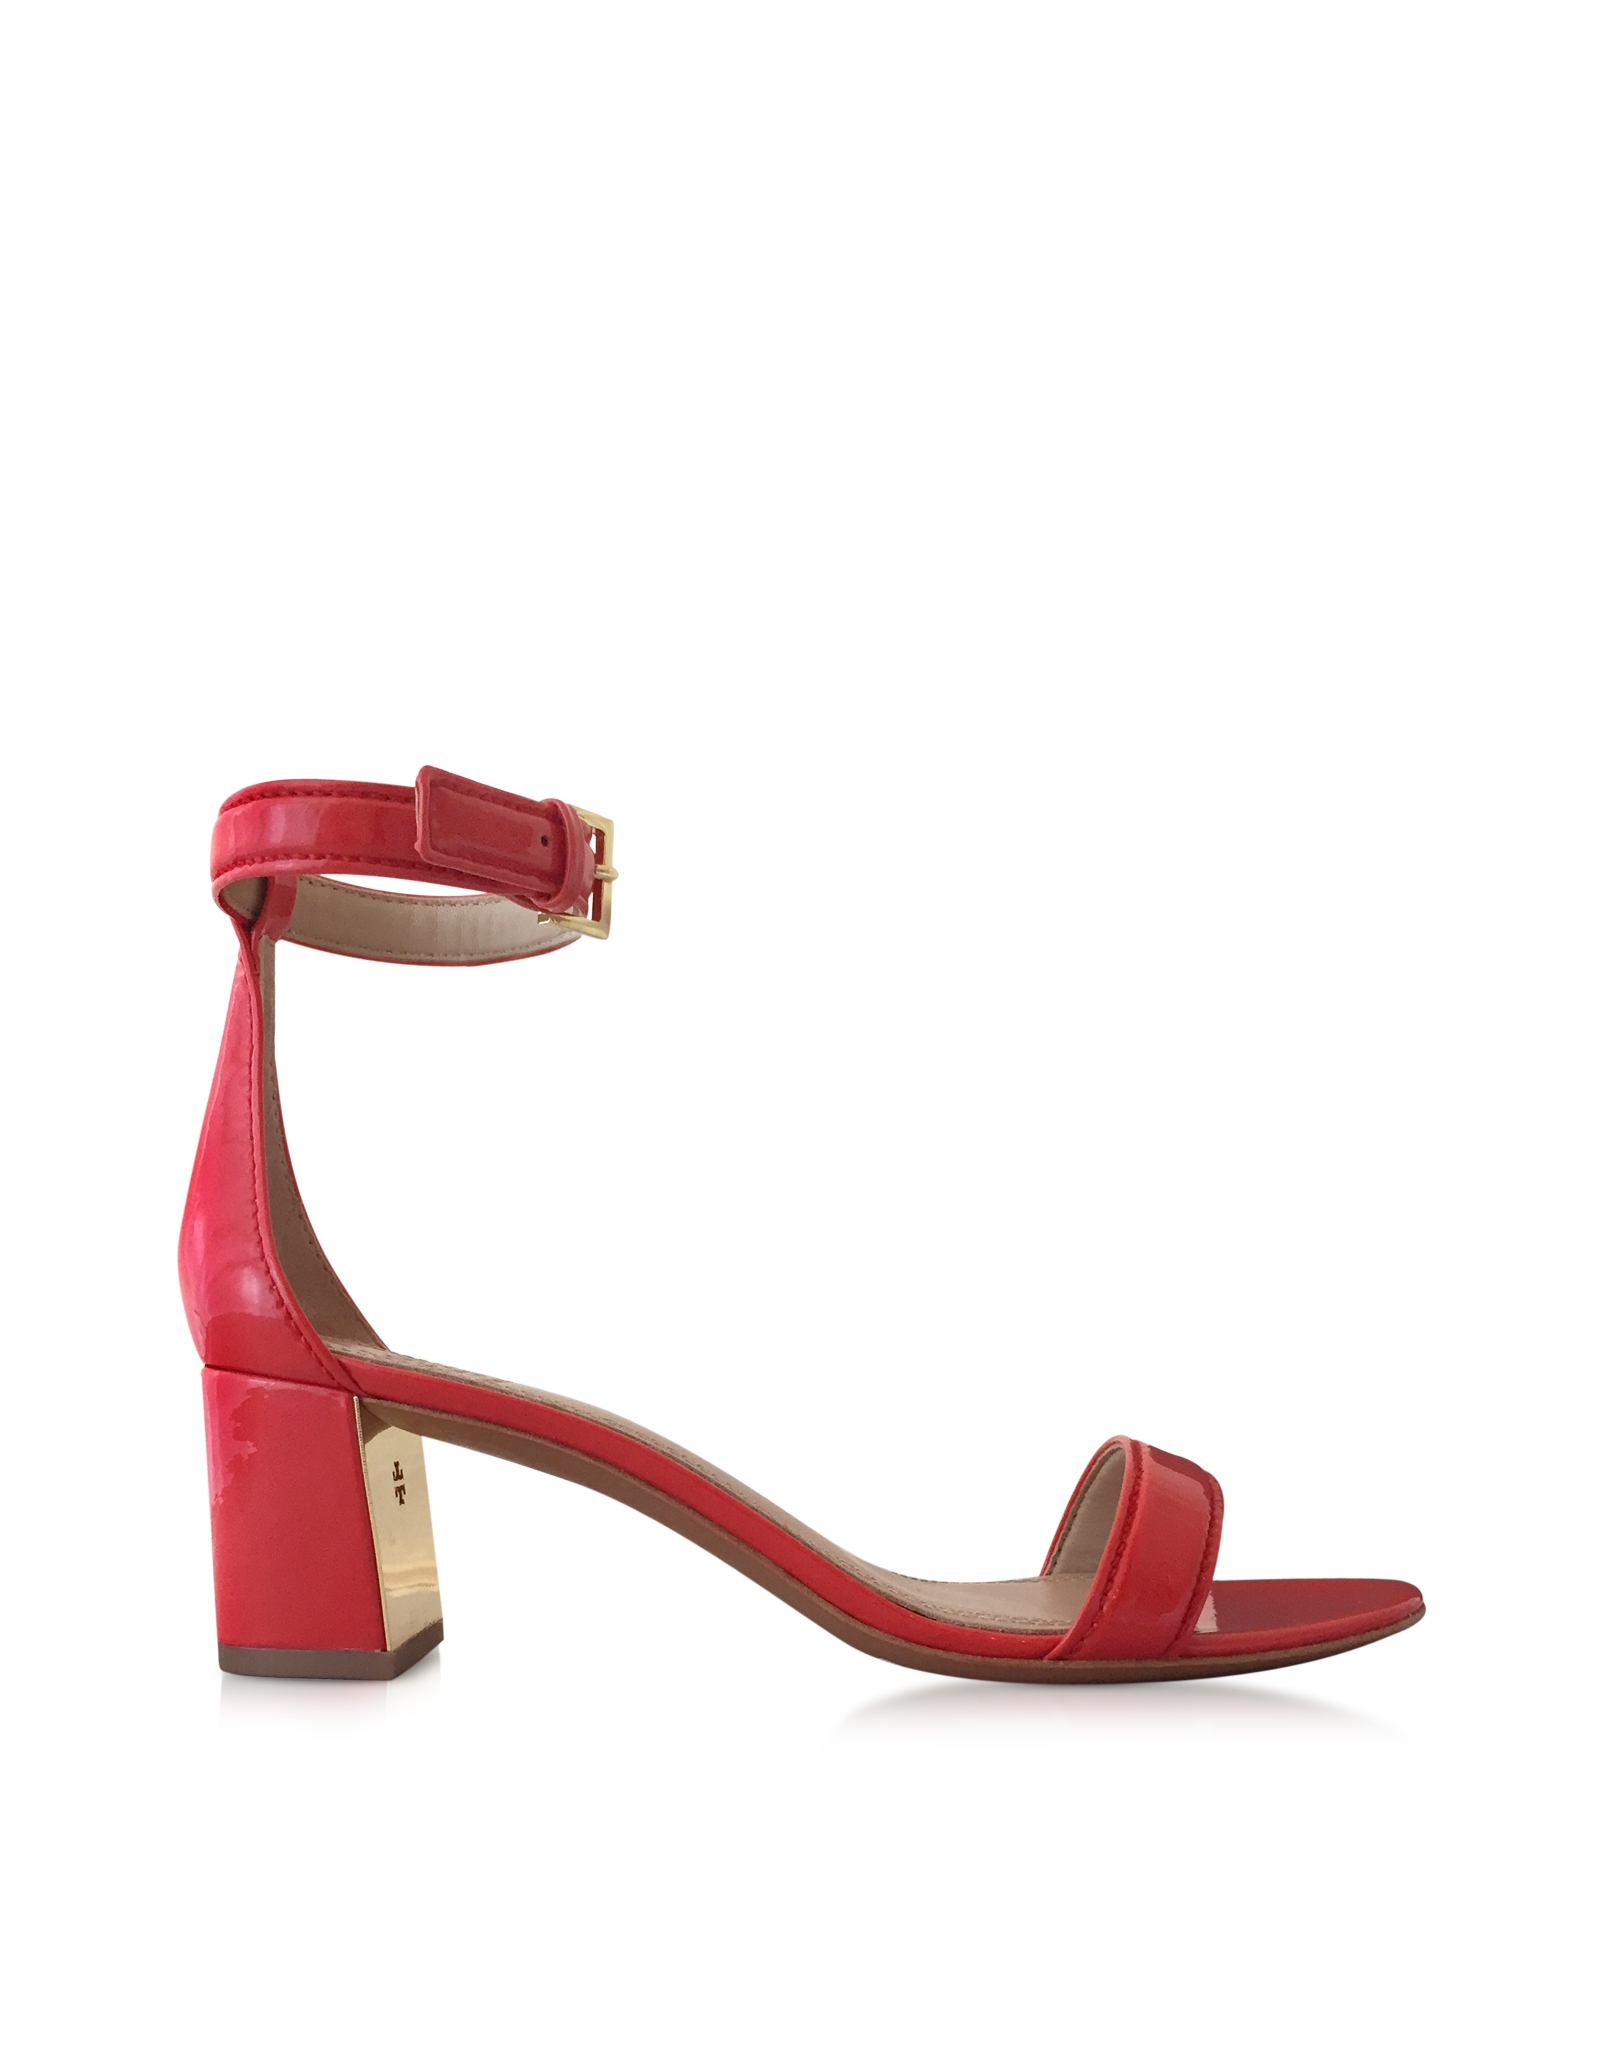 112d6809e Lyst - Tory Burch Cecile Pepper Red Leather Mid Heel Sandal in Red